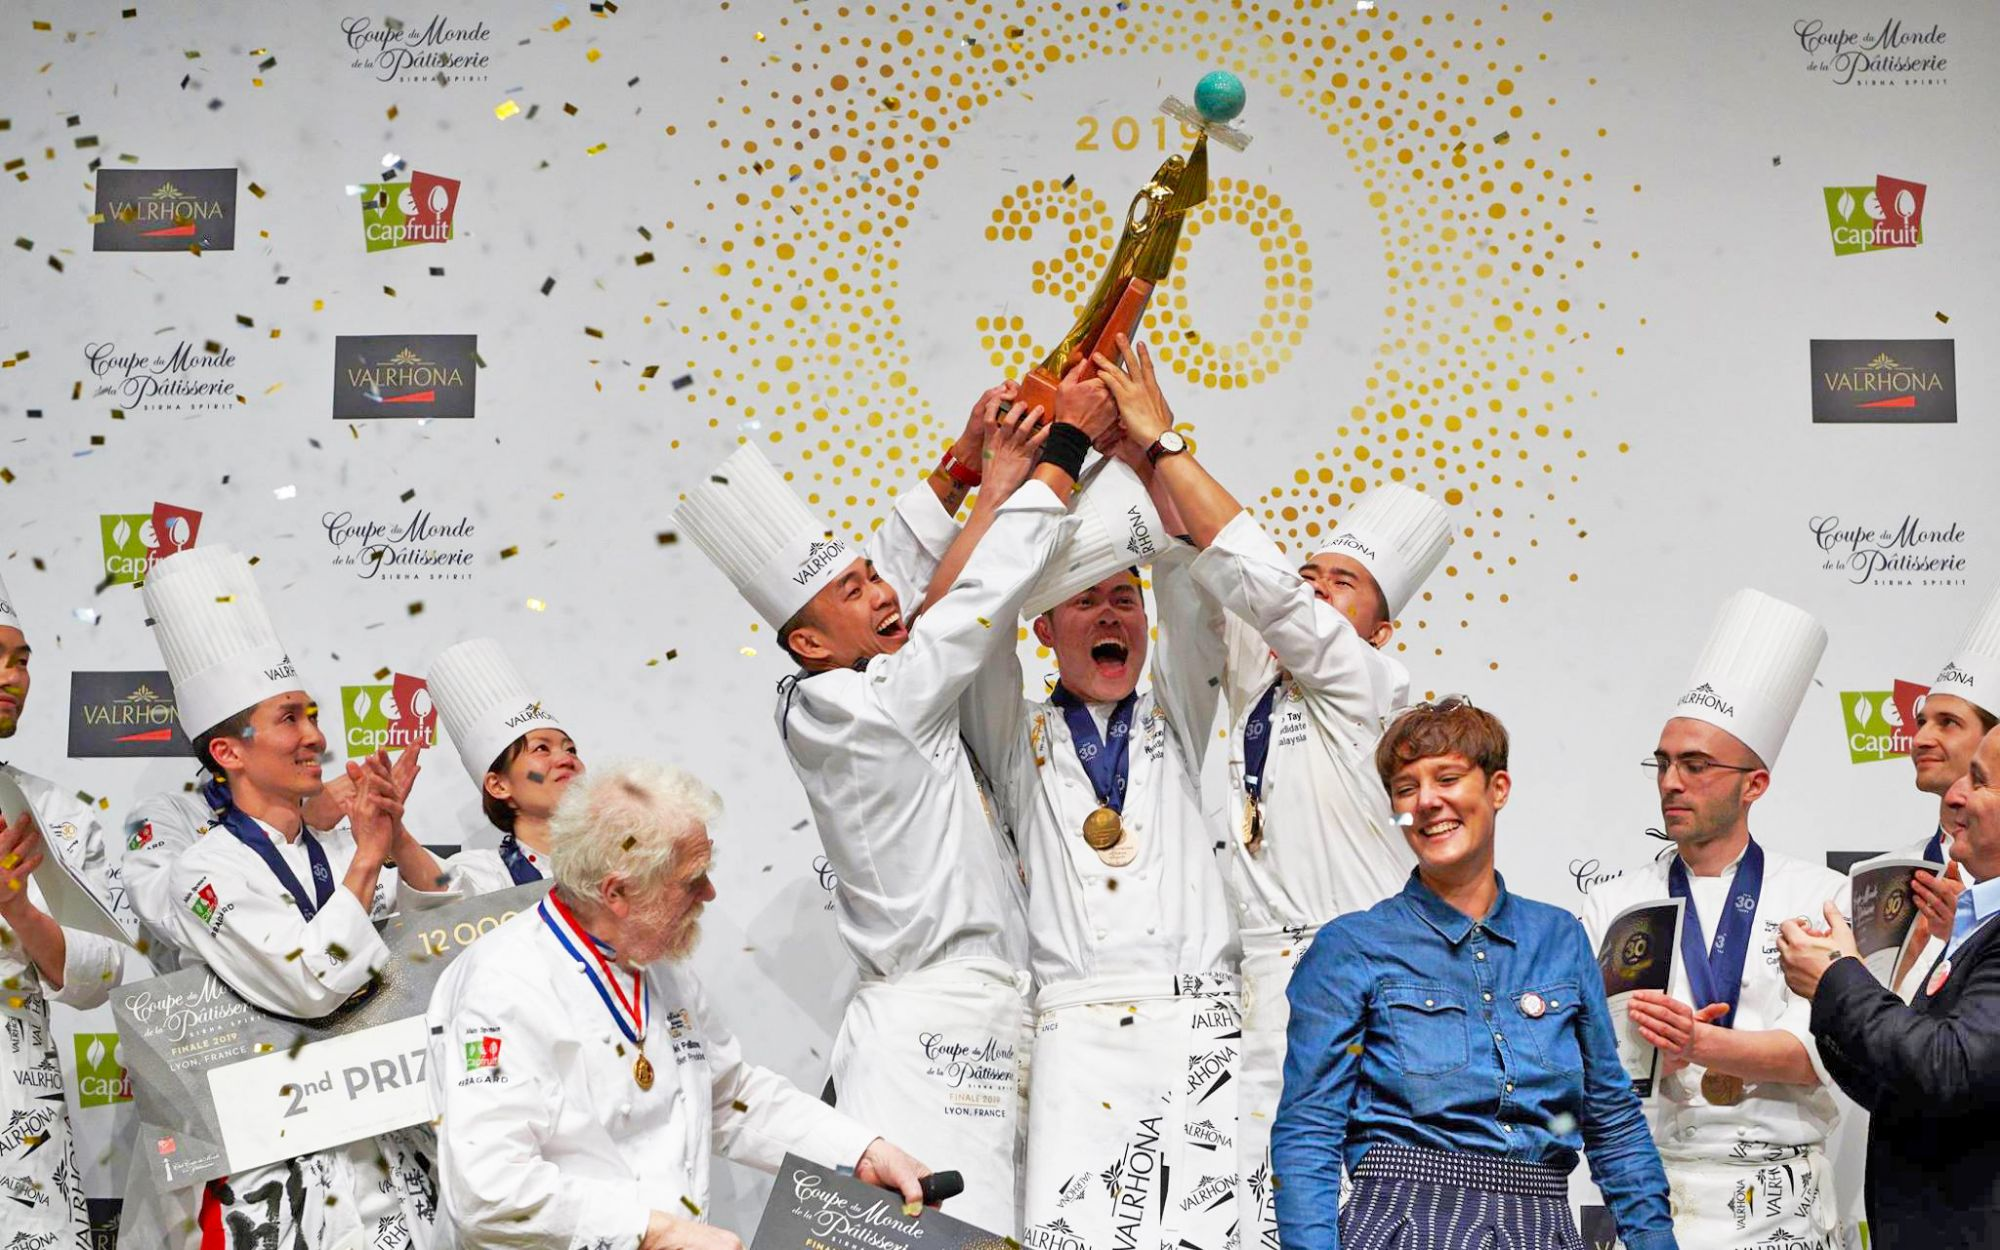 Sweet Victory For Team Malaysia At The 30th World Pastry Cup In France!